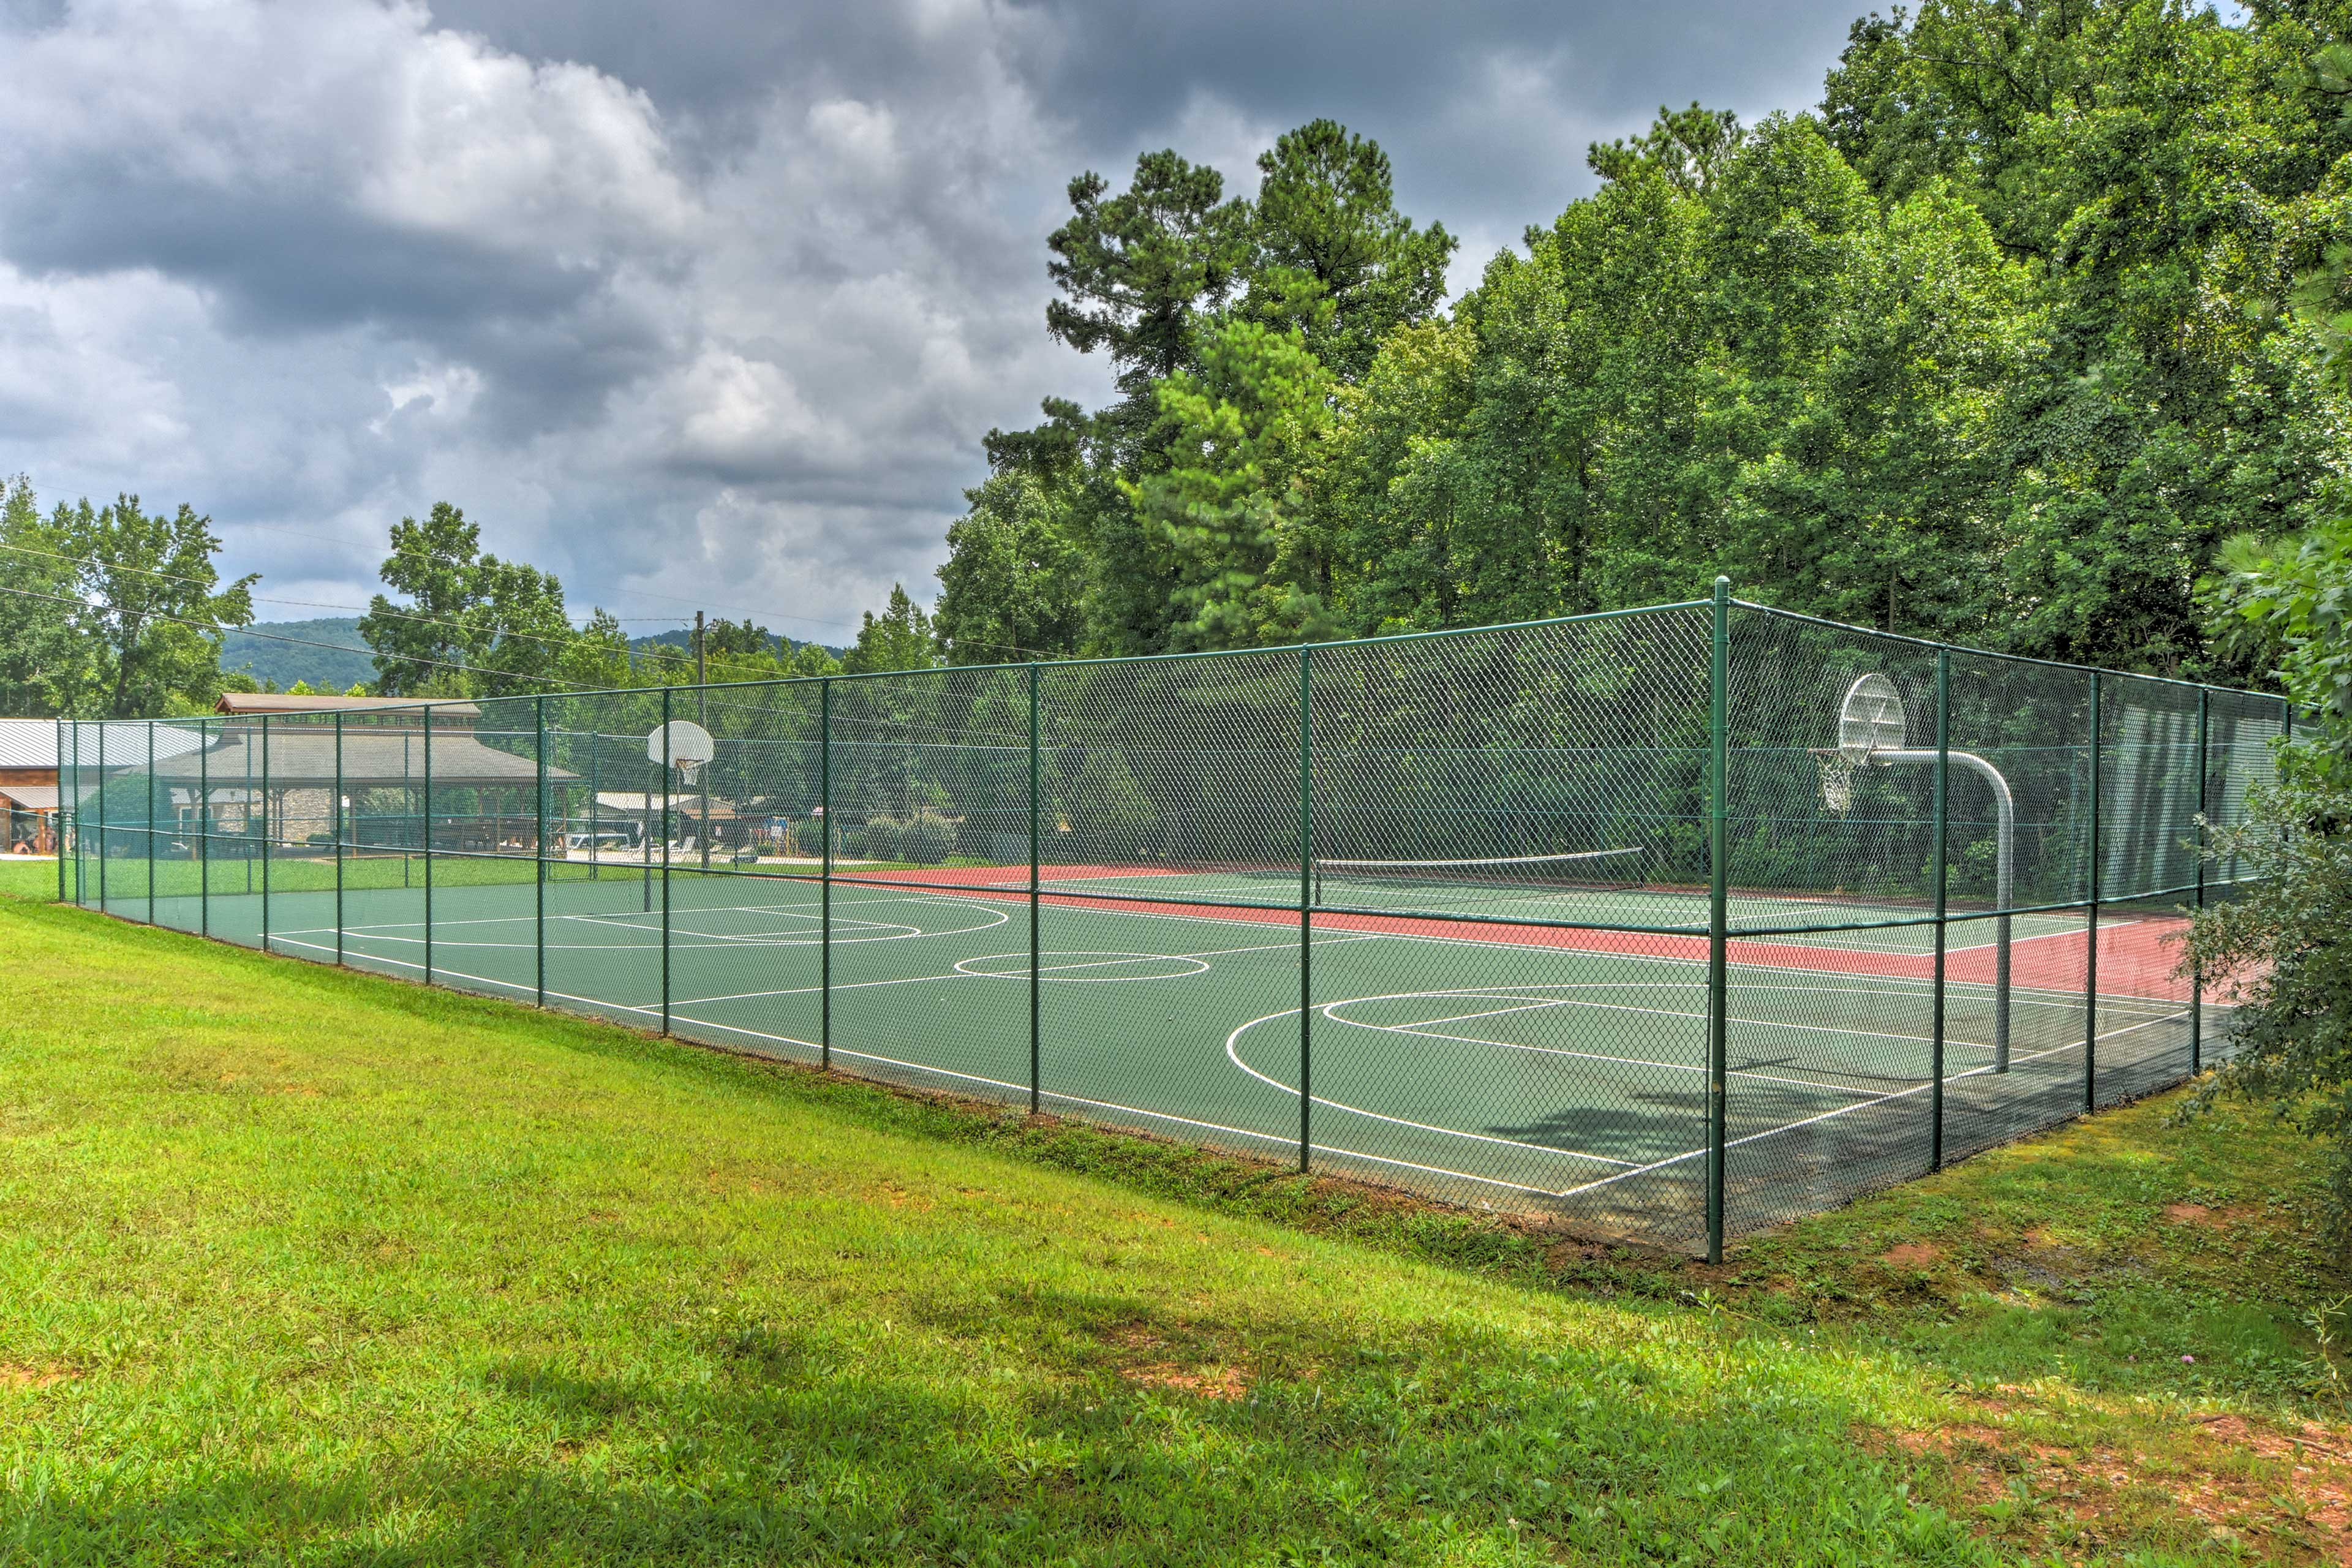 Hit up the community tennis or basketball courts!